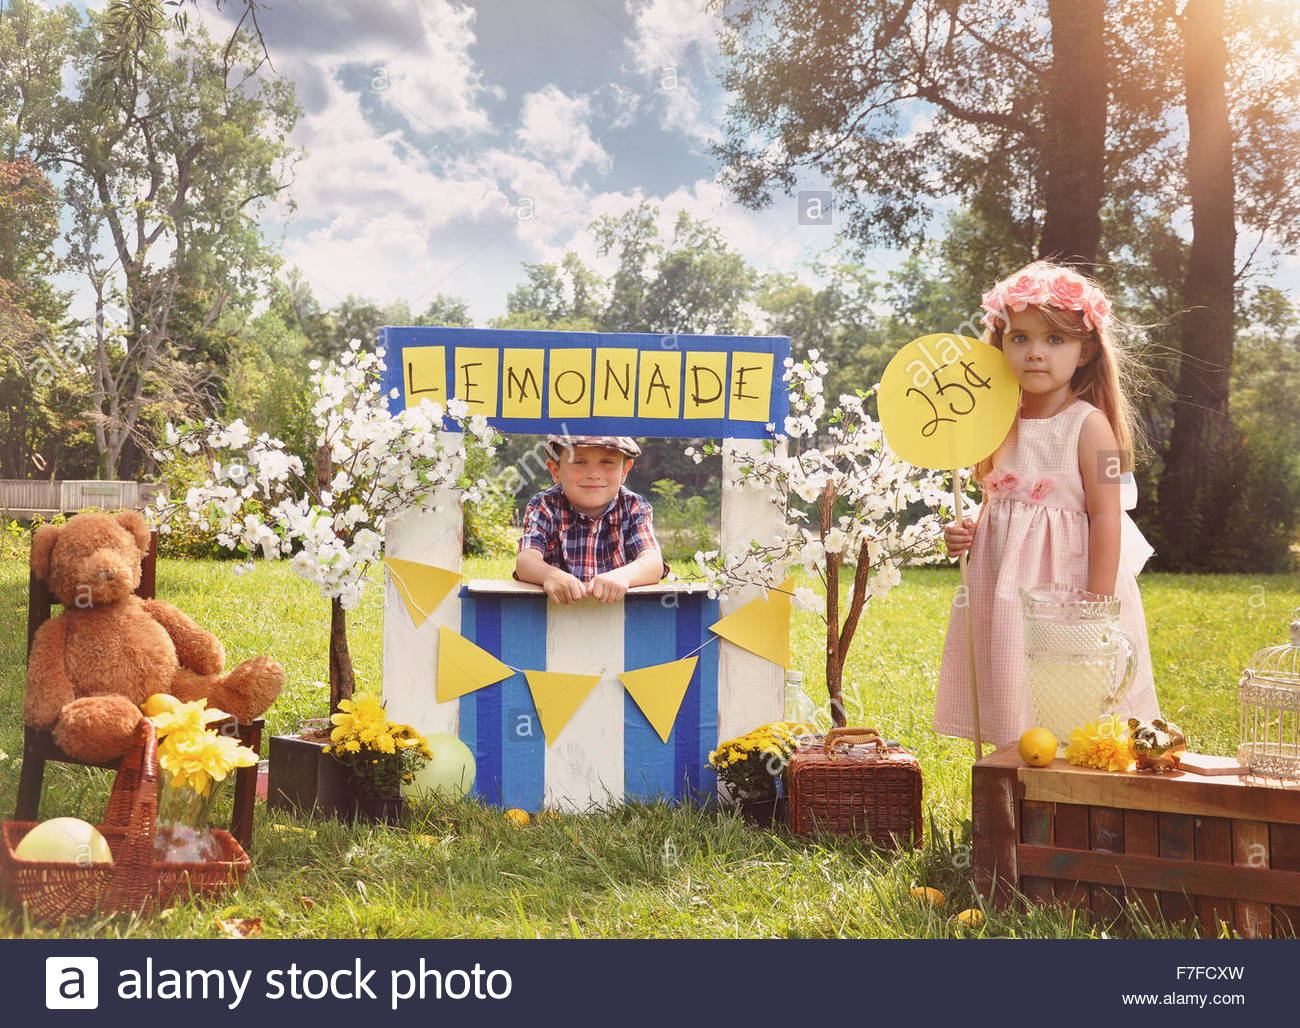 Two little kids are selling lemonade at a homemade lemonade stand on a sunny day with a price sign for an entrepreneur - Stock Image